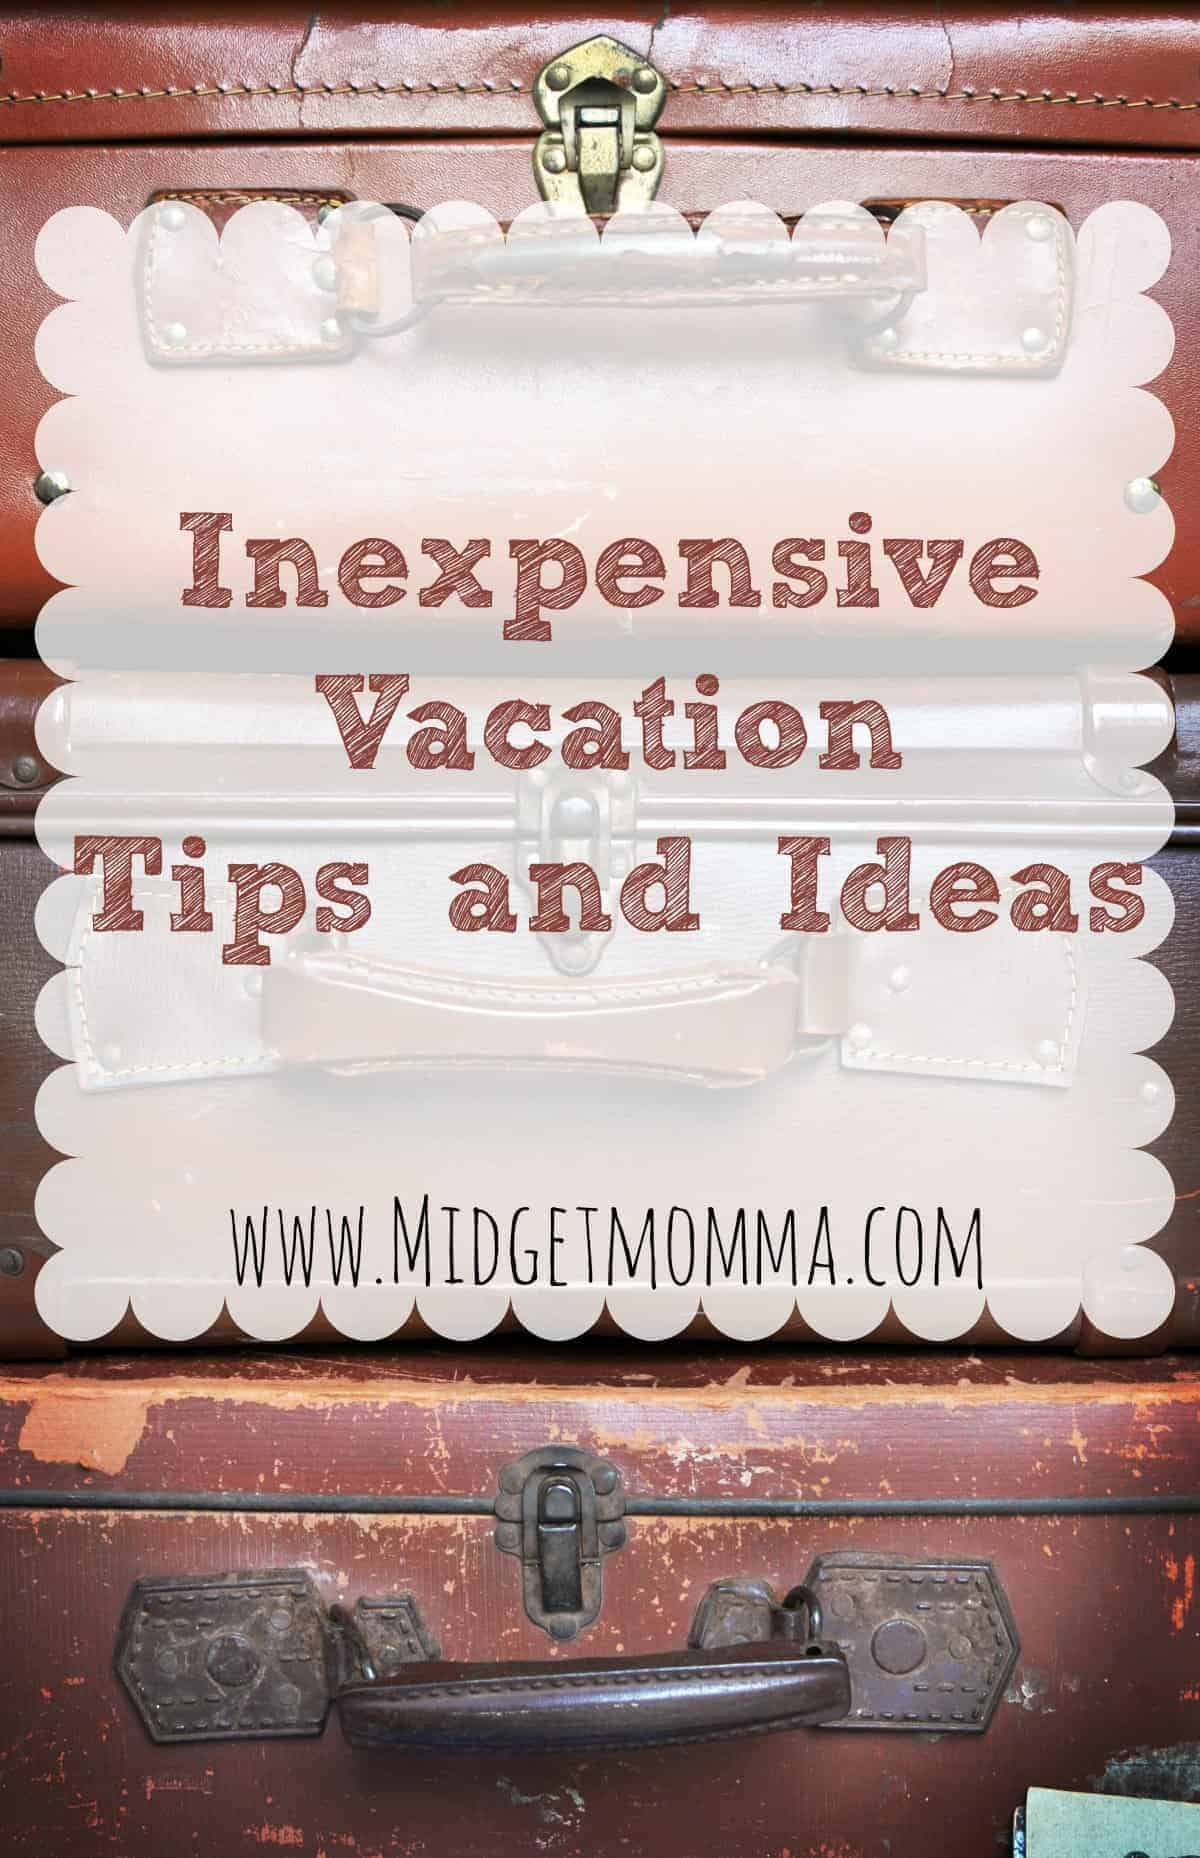 31 Ways to Save $100 or more Per Year: Take Inexpensive Vacations (Day 16)